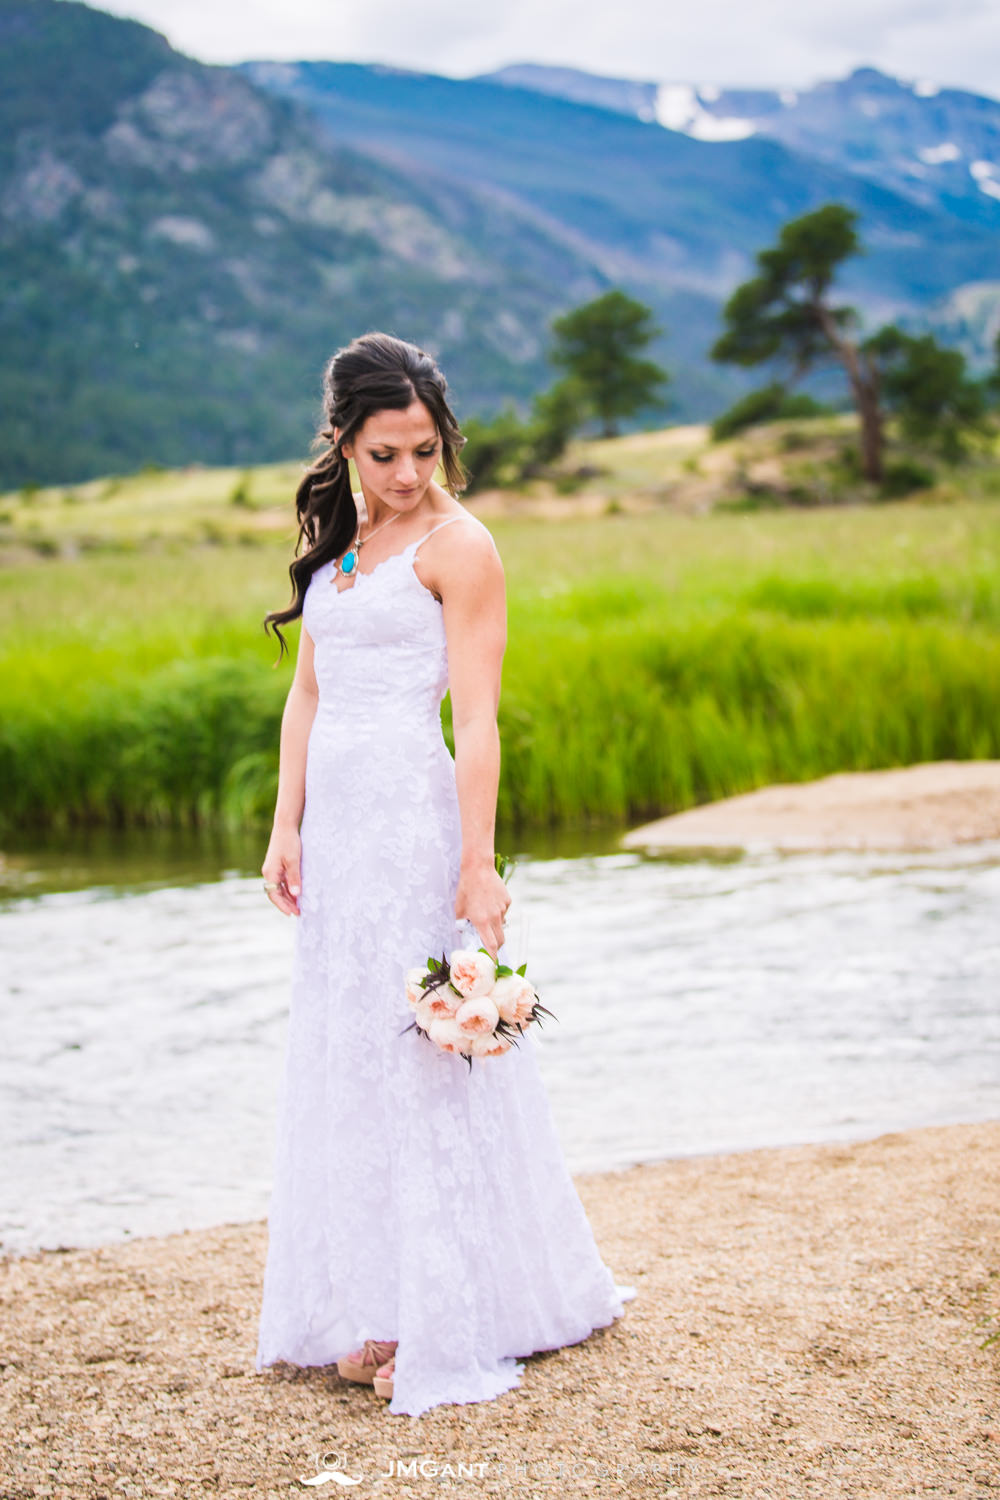 Summer elopement in